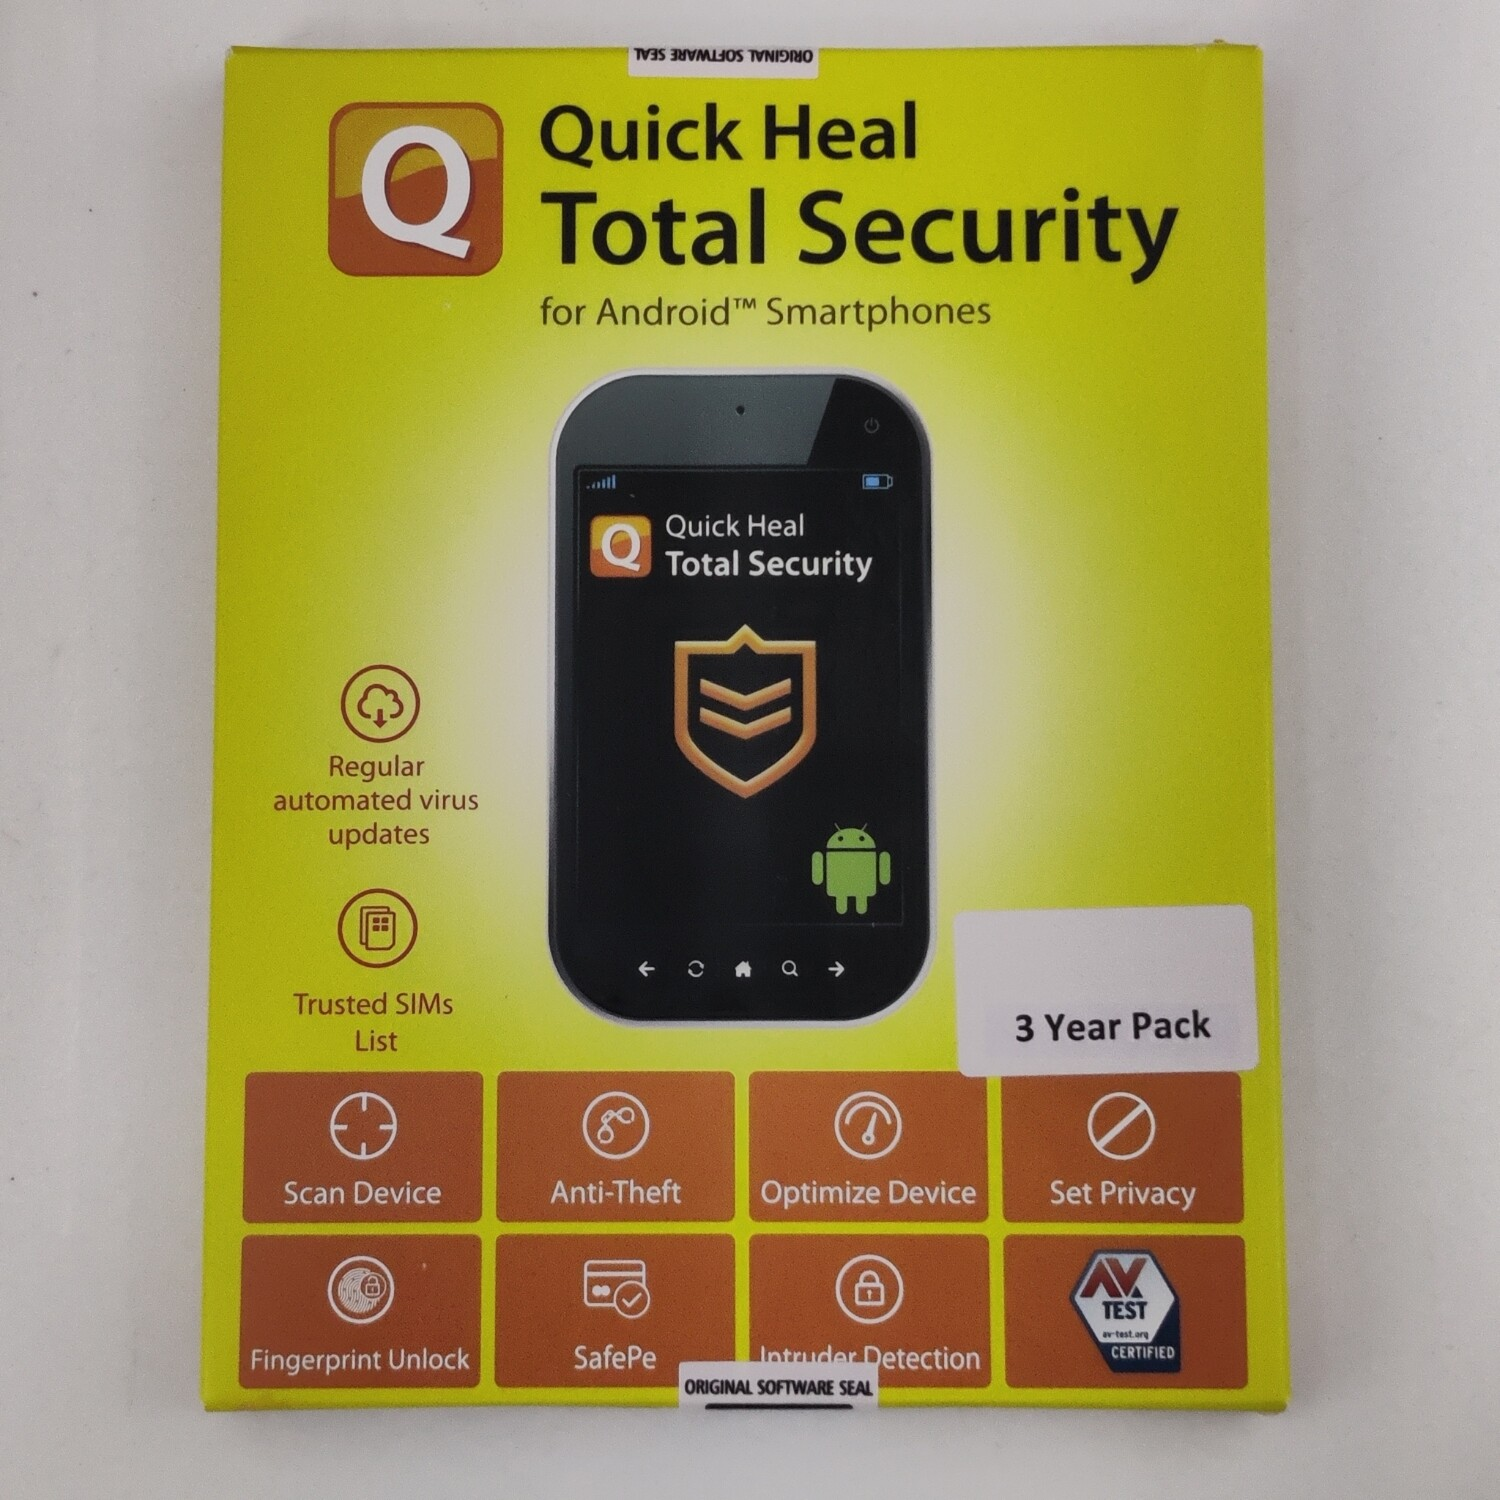 1 Device, 3 Year, Quick Heal Total Security, Android